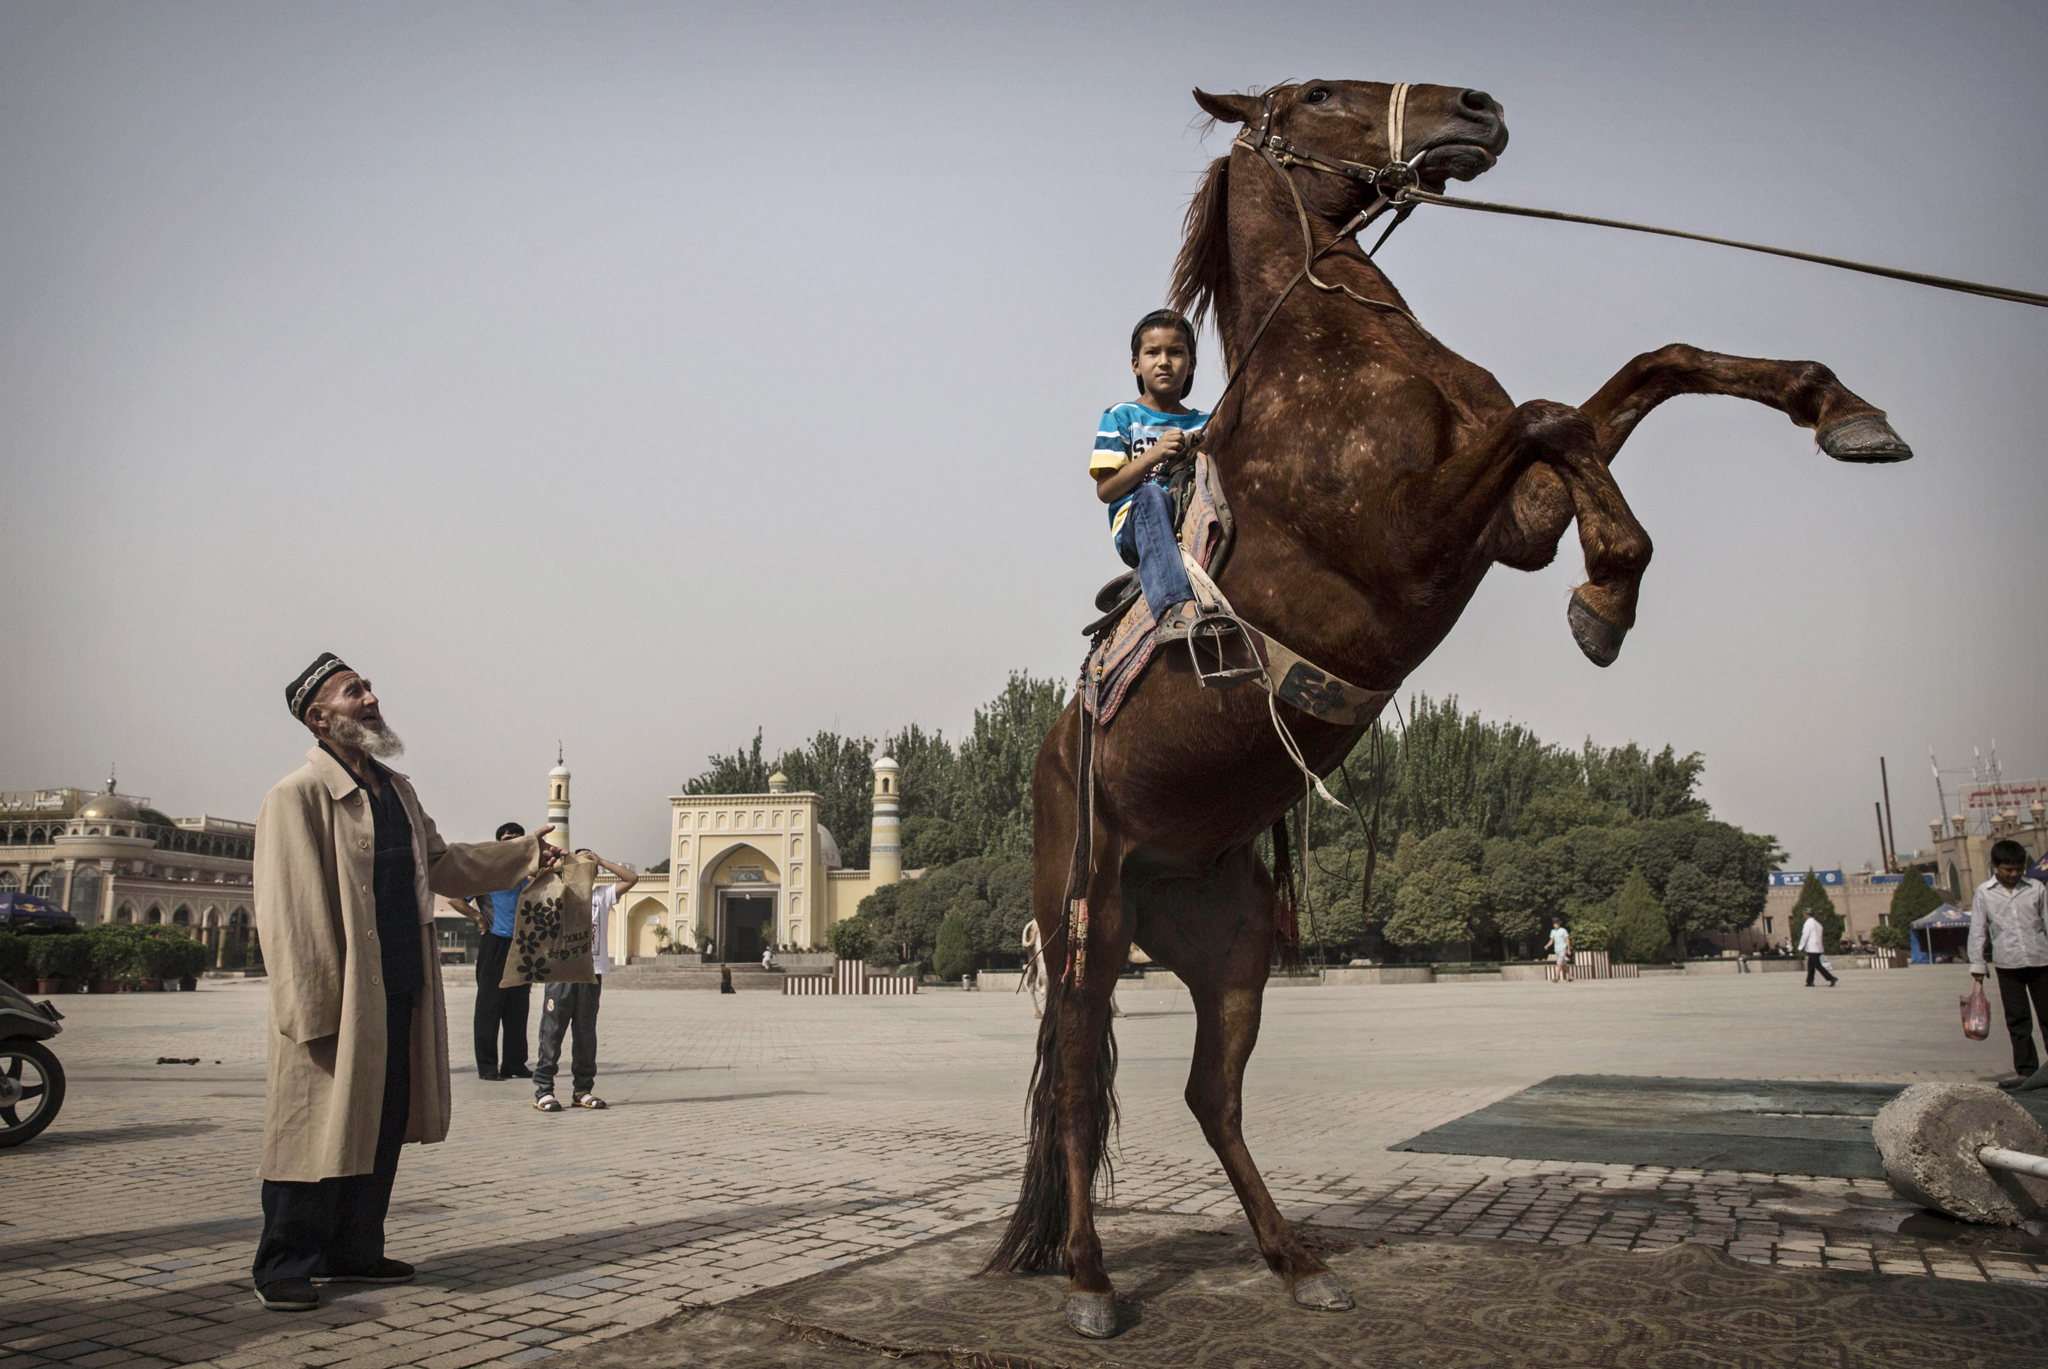 Uyghur Life Persists in Kashgar Amid Growing Tension in Restive Xinjiang Province...KASHGAR, CHINA - JULY 28:  A Uyghur boy sits atop a horse as he has his picture taken outside the Id Kah Mosque before the Eid holiday  on July 28, 2014 in old Kashgar, Xinjiang Province, China. Nearly 100 people have been killed in unrest in the restive Xinjiang Province in the last week in what authorities say is terrorism but advocacy groups claim is a result of a government crackdown to silence opposition to its policies. China's Muslim Uyghur ethnic group faces cultural and religious restrictions by the Chinese government. Beijing says it is investing heavily in the Xinjiang region but Uyghurs are increasingly dissatisfied with the influx of Han Chinese and uneven economic development.  (Photo by Kevin Frayer/Getty Images)